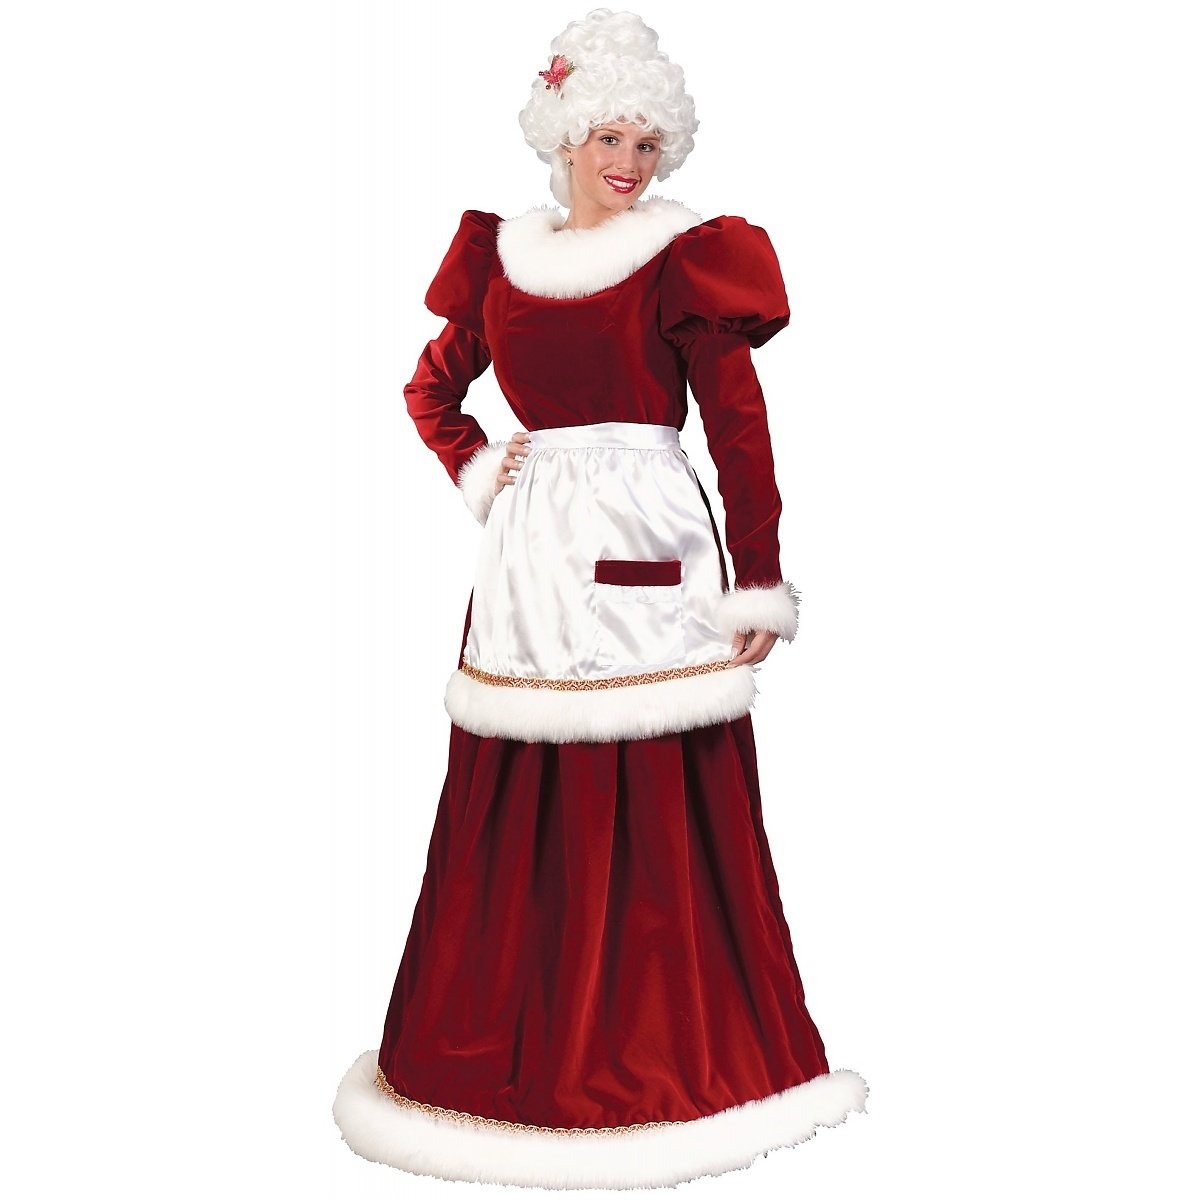 Amazon.com Fun World Costumes Womenu0027s Velvet Mrs. Santa Dress Adult Costume Clothing  sc 1 st  Amazon.com & Amazon.com: Fun World Costumes Womenu0027s Velvet Mrs. Santa Dress Adult ...